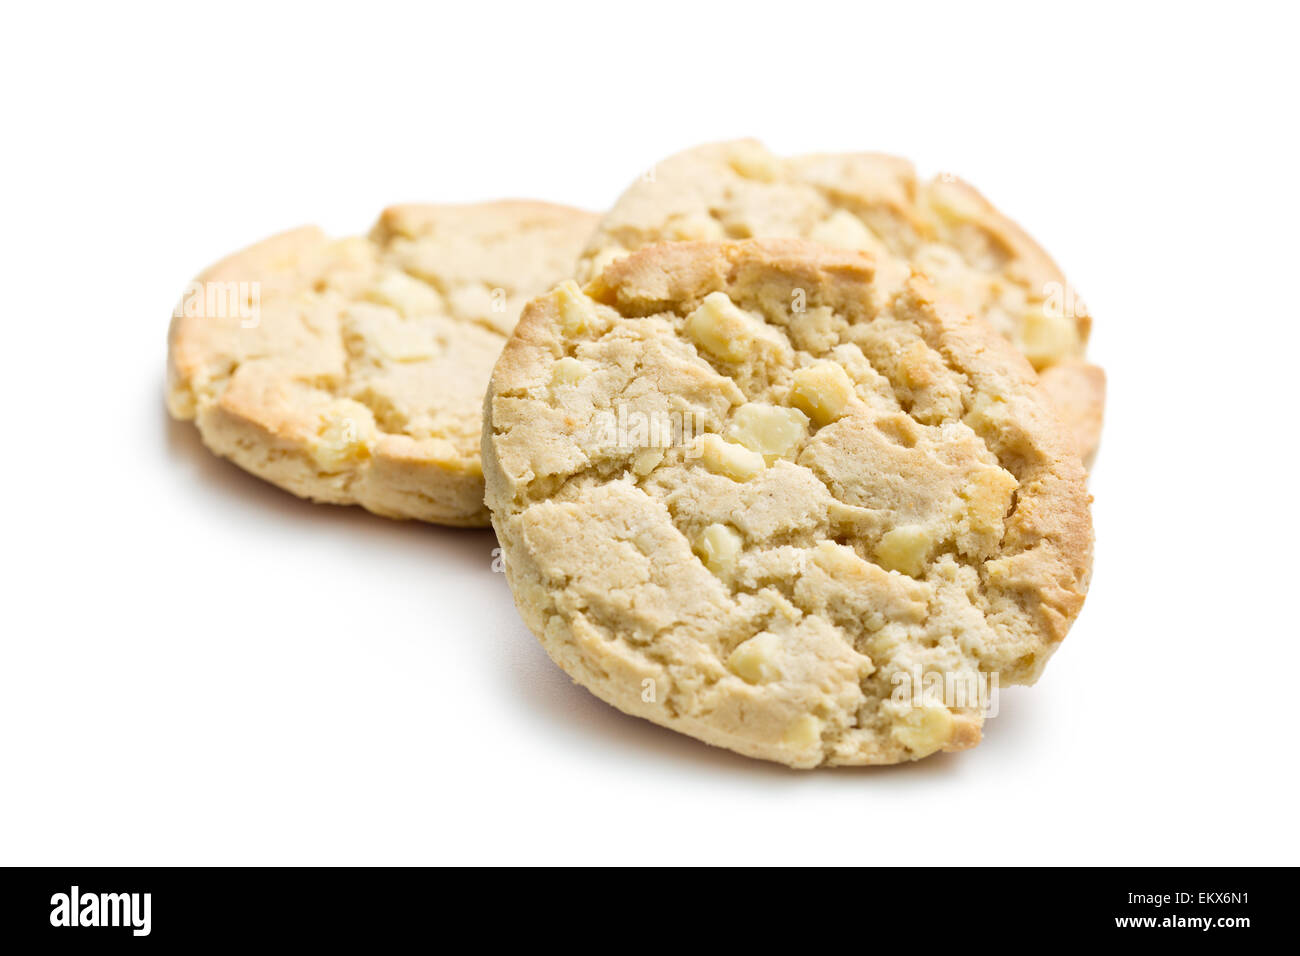 the cookies with white chocolate - Stock Image